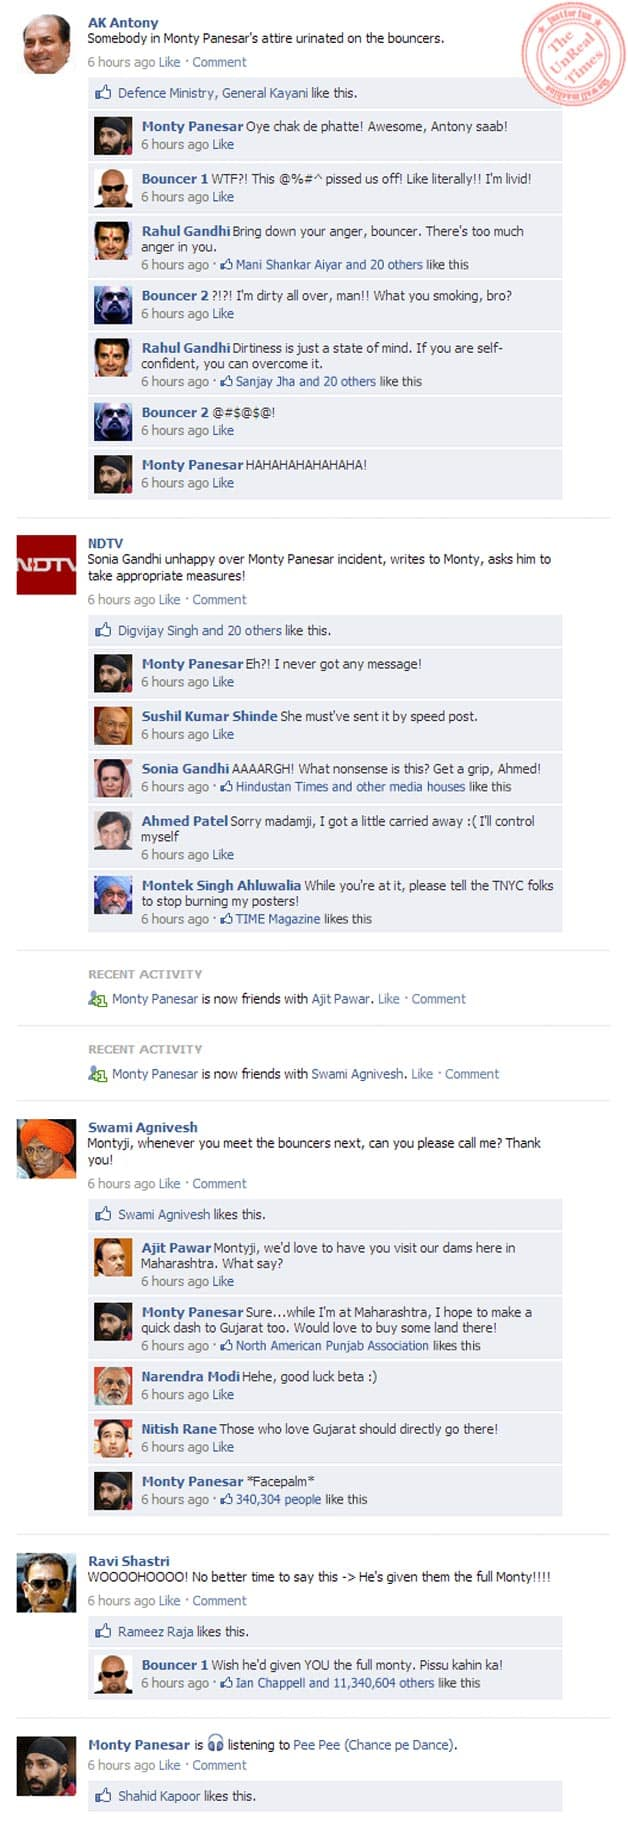 Monty Panesar's act: Cricketers, politicians discuss it on their Facebook Wall